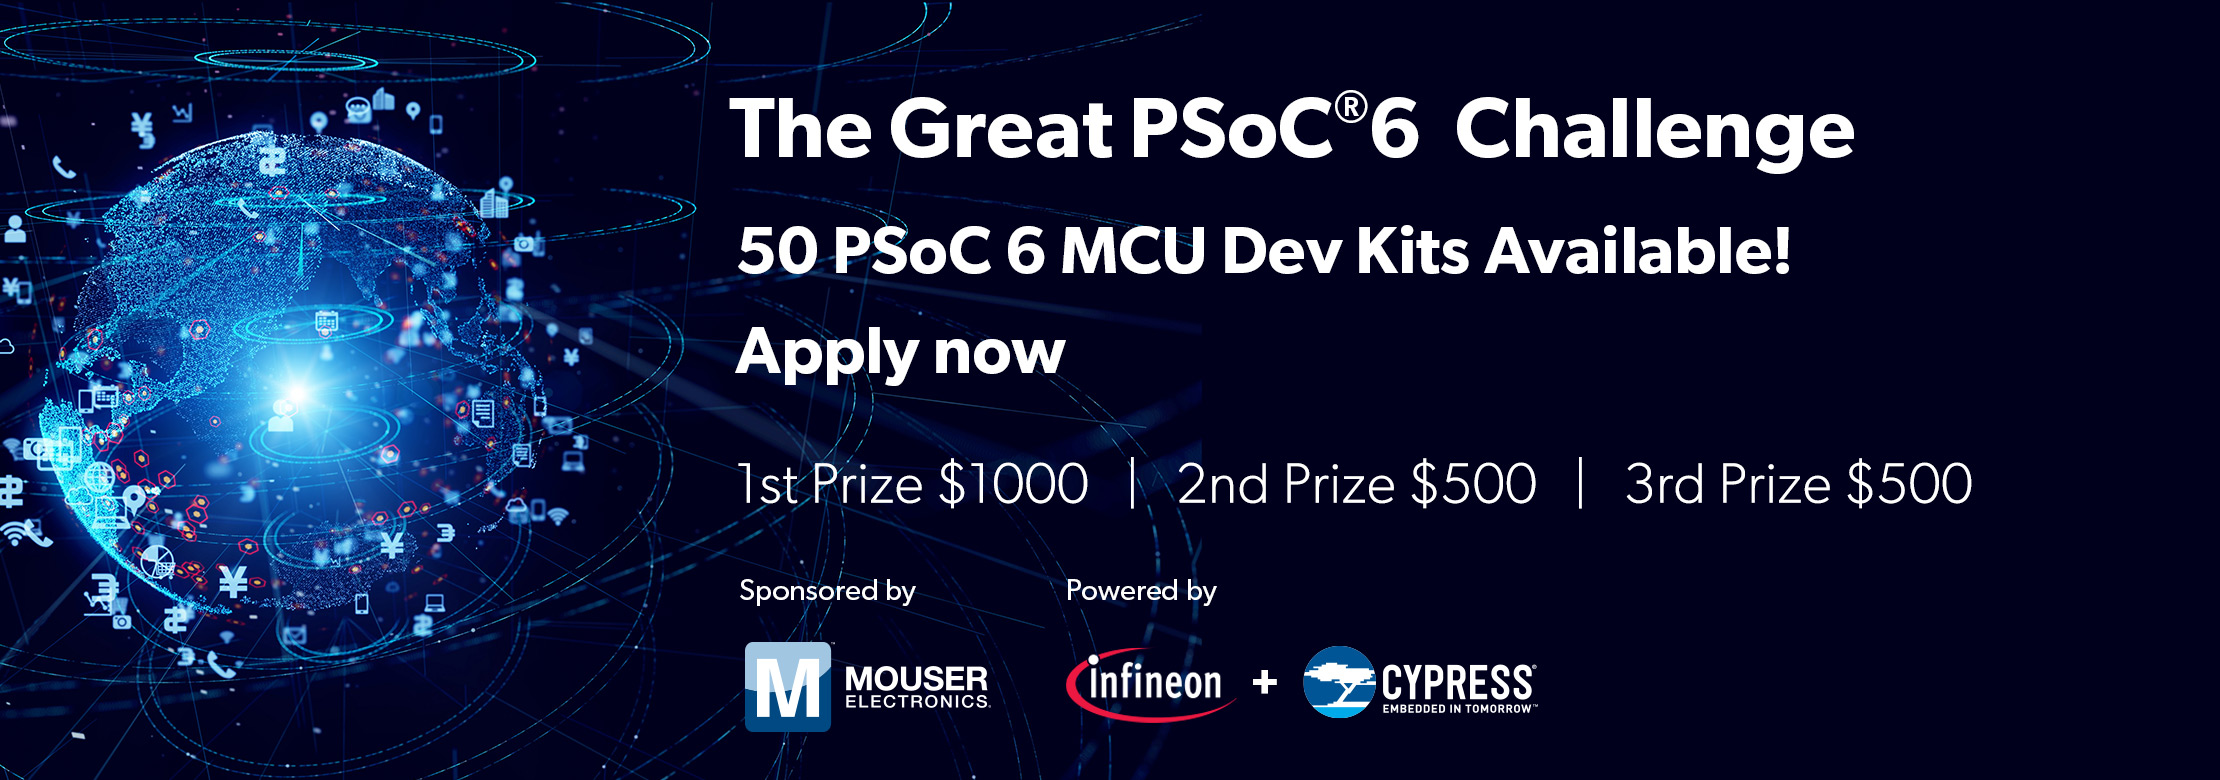 Make with PSoC 6 contest